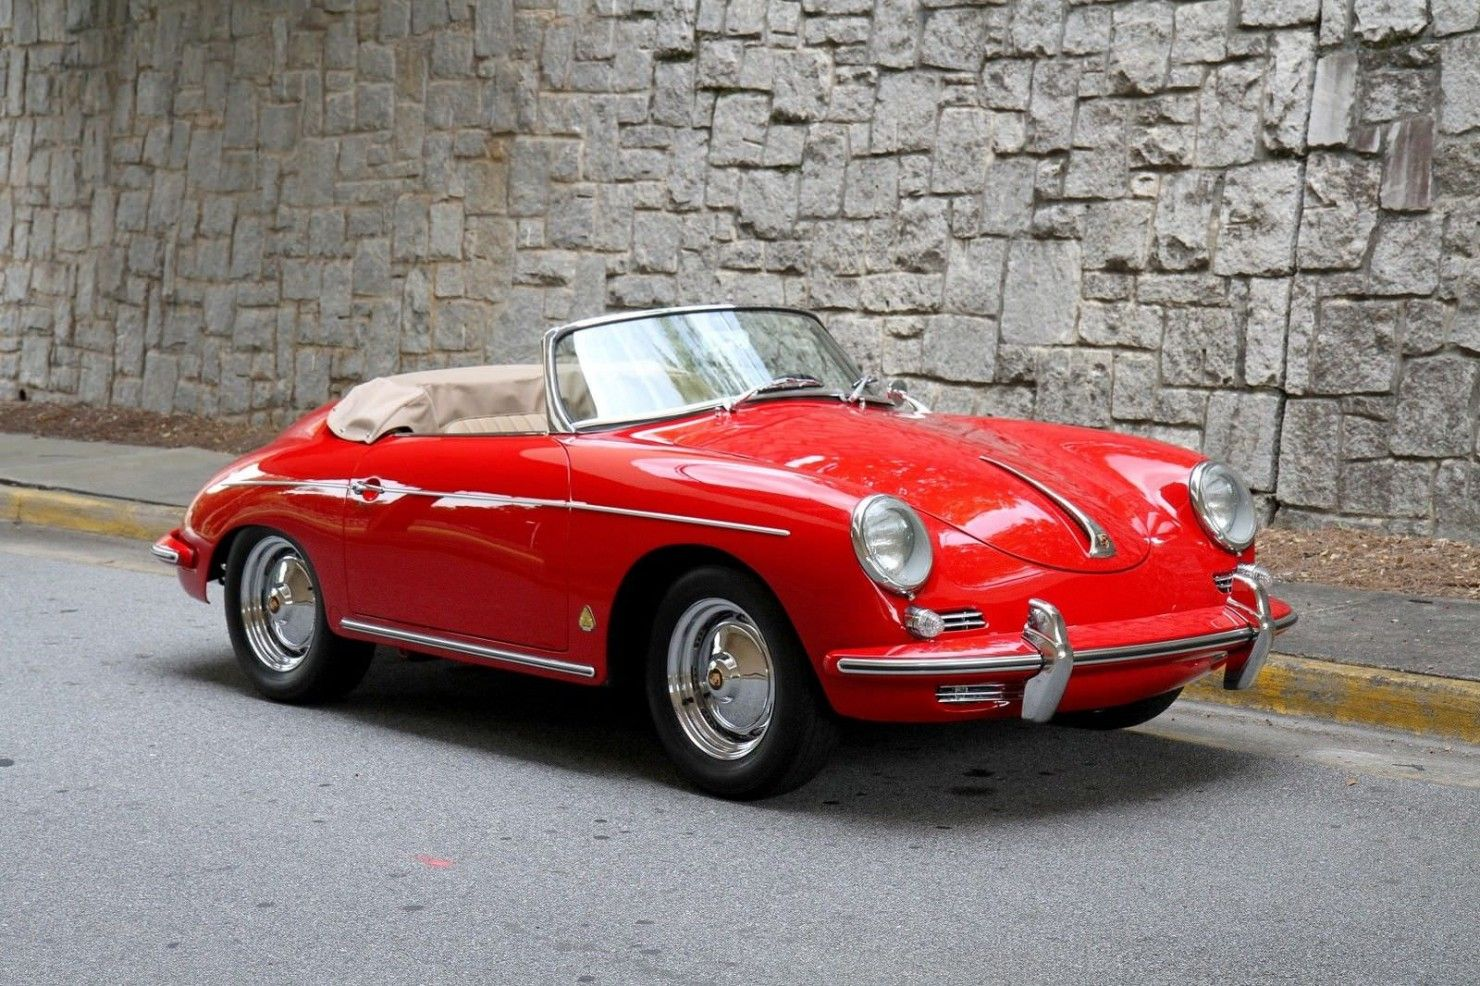 1960 PORSCHE 356 ROADSTER Possibly The Best Looking Car Ever Made At Least In My Book